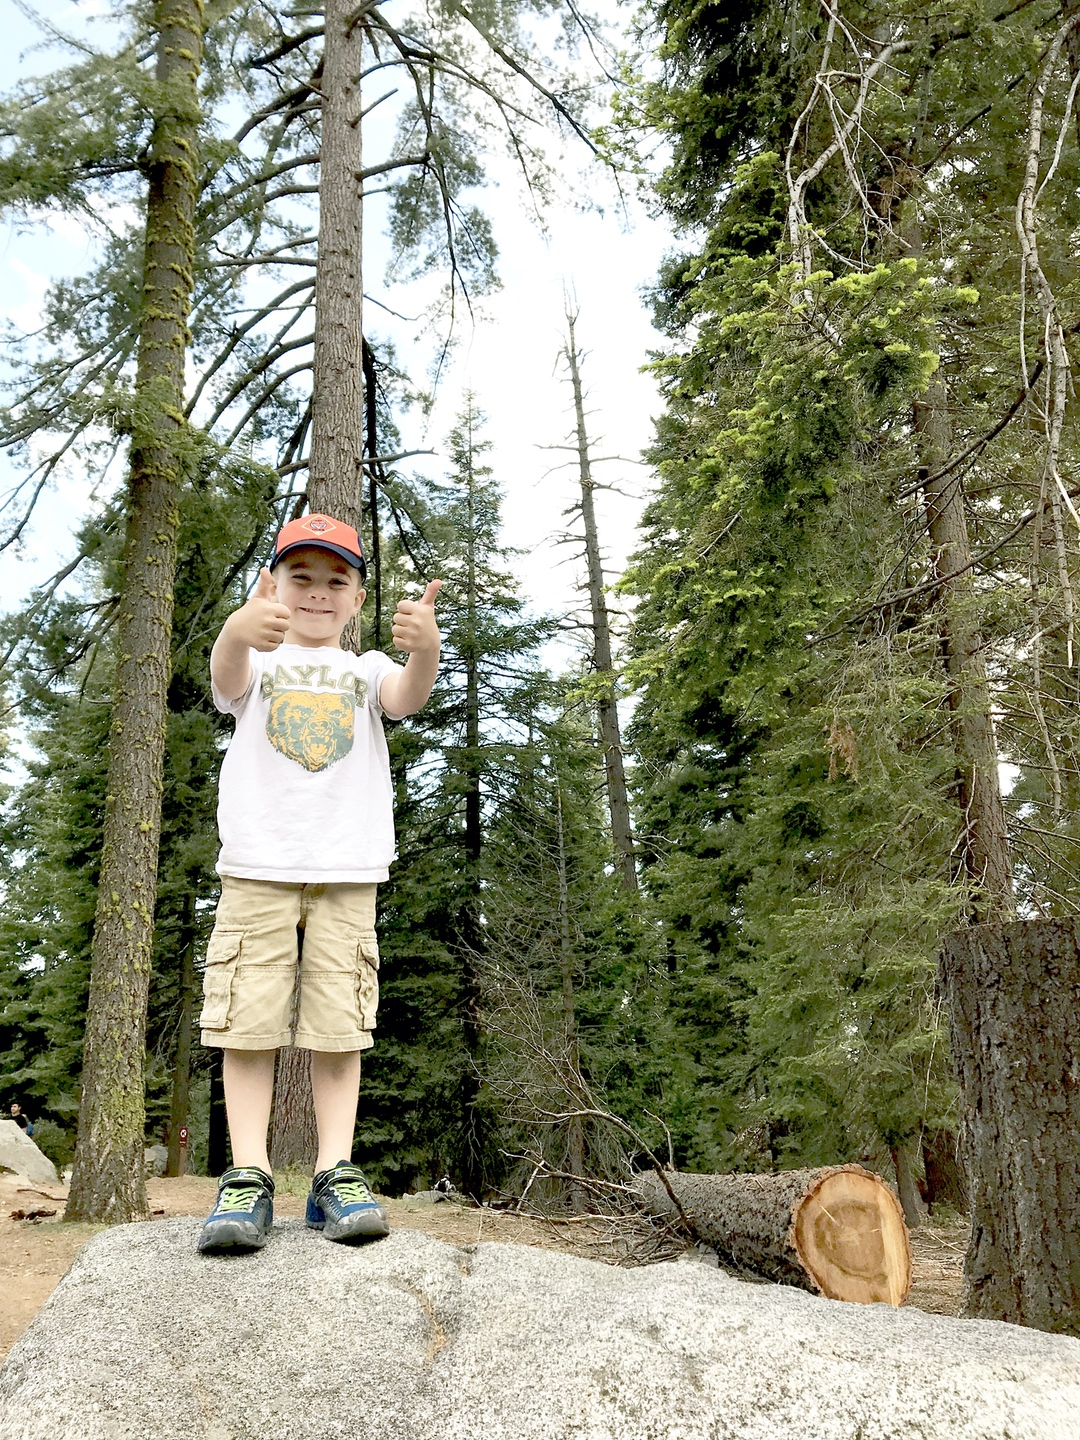 boy standing on rock with two thumbs up